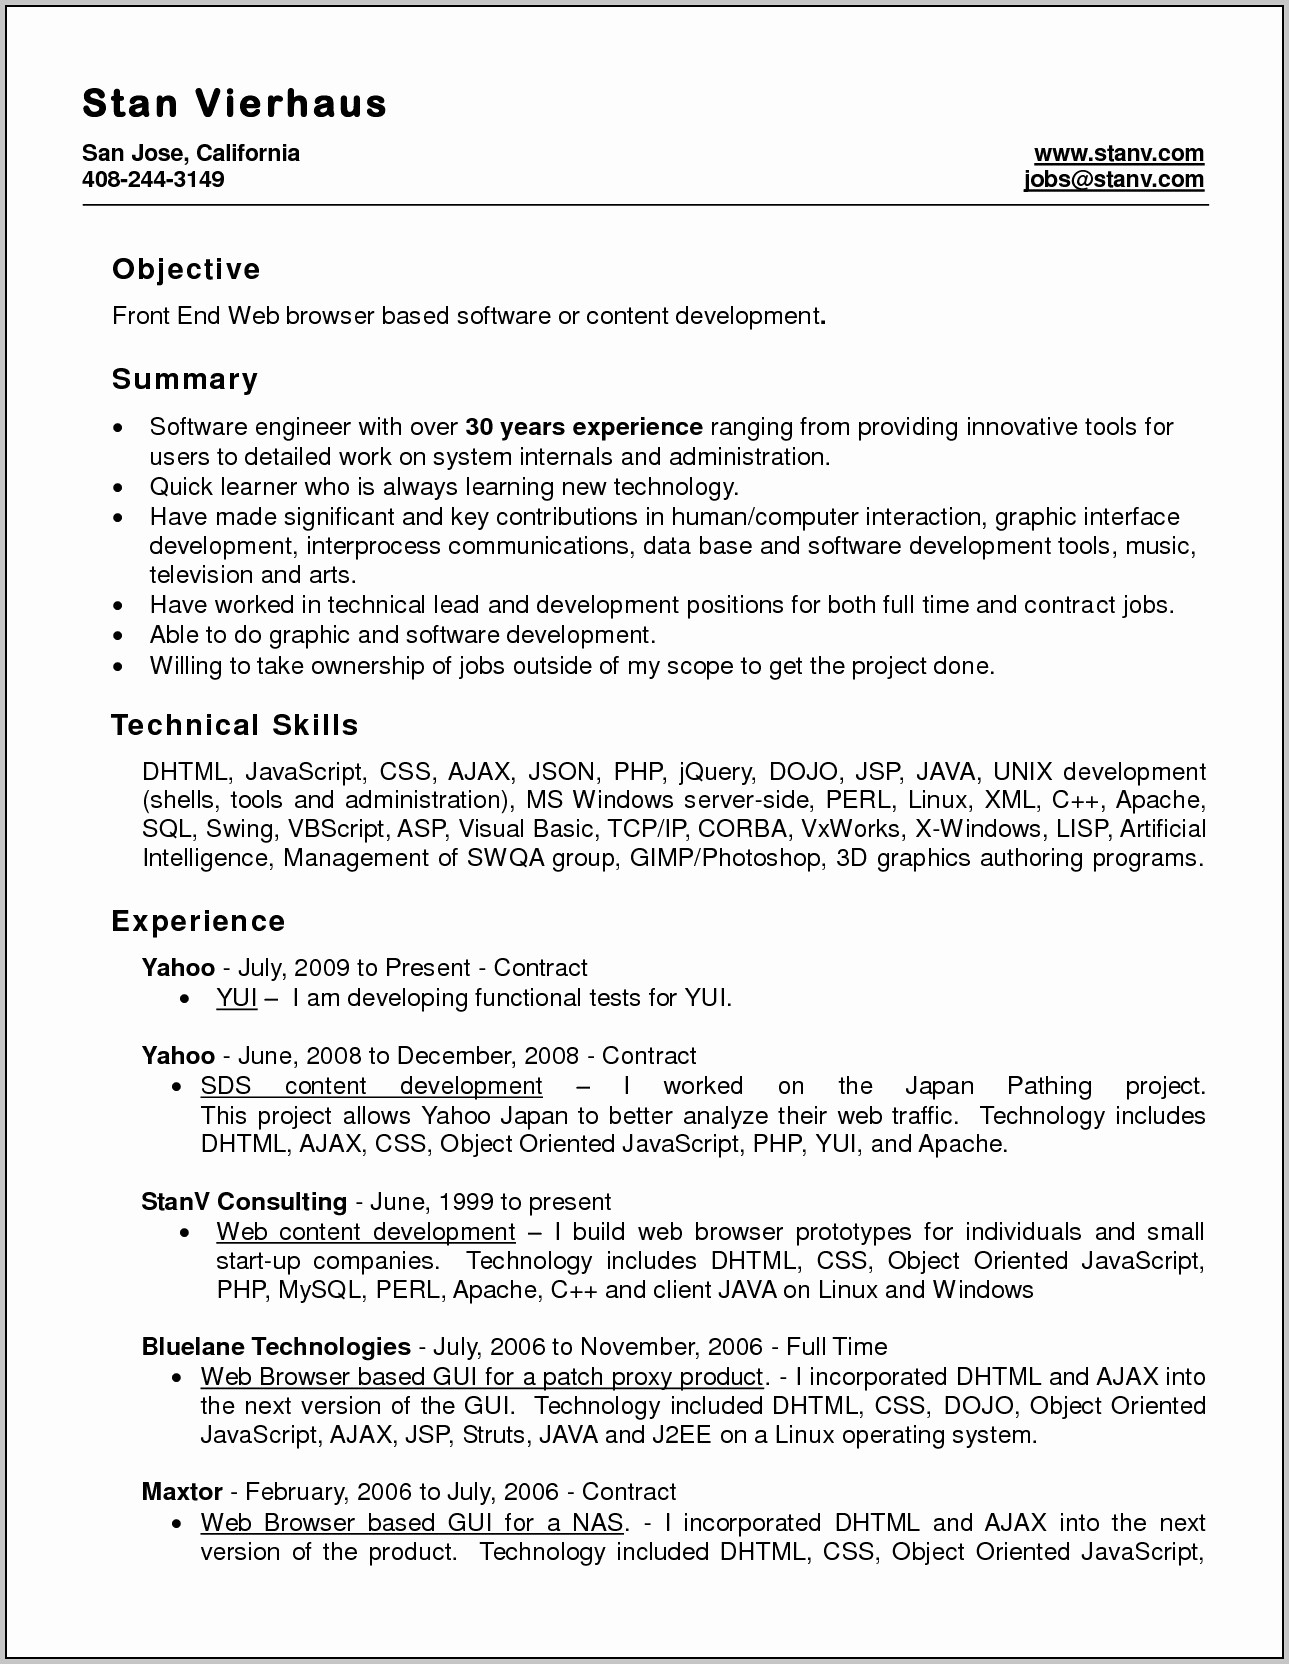 Professional Resume Template Microsoft Word Lovely Resume Examples Resume Template for Word 2007 Logistics